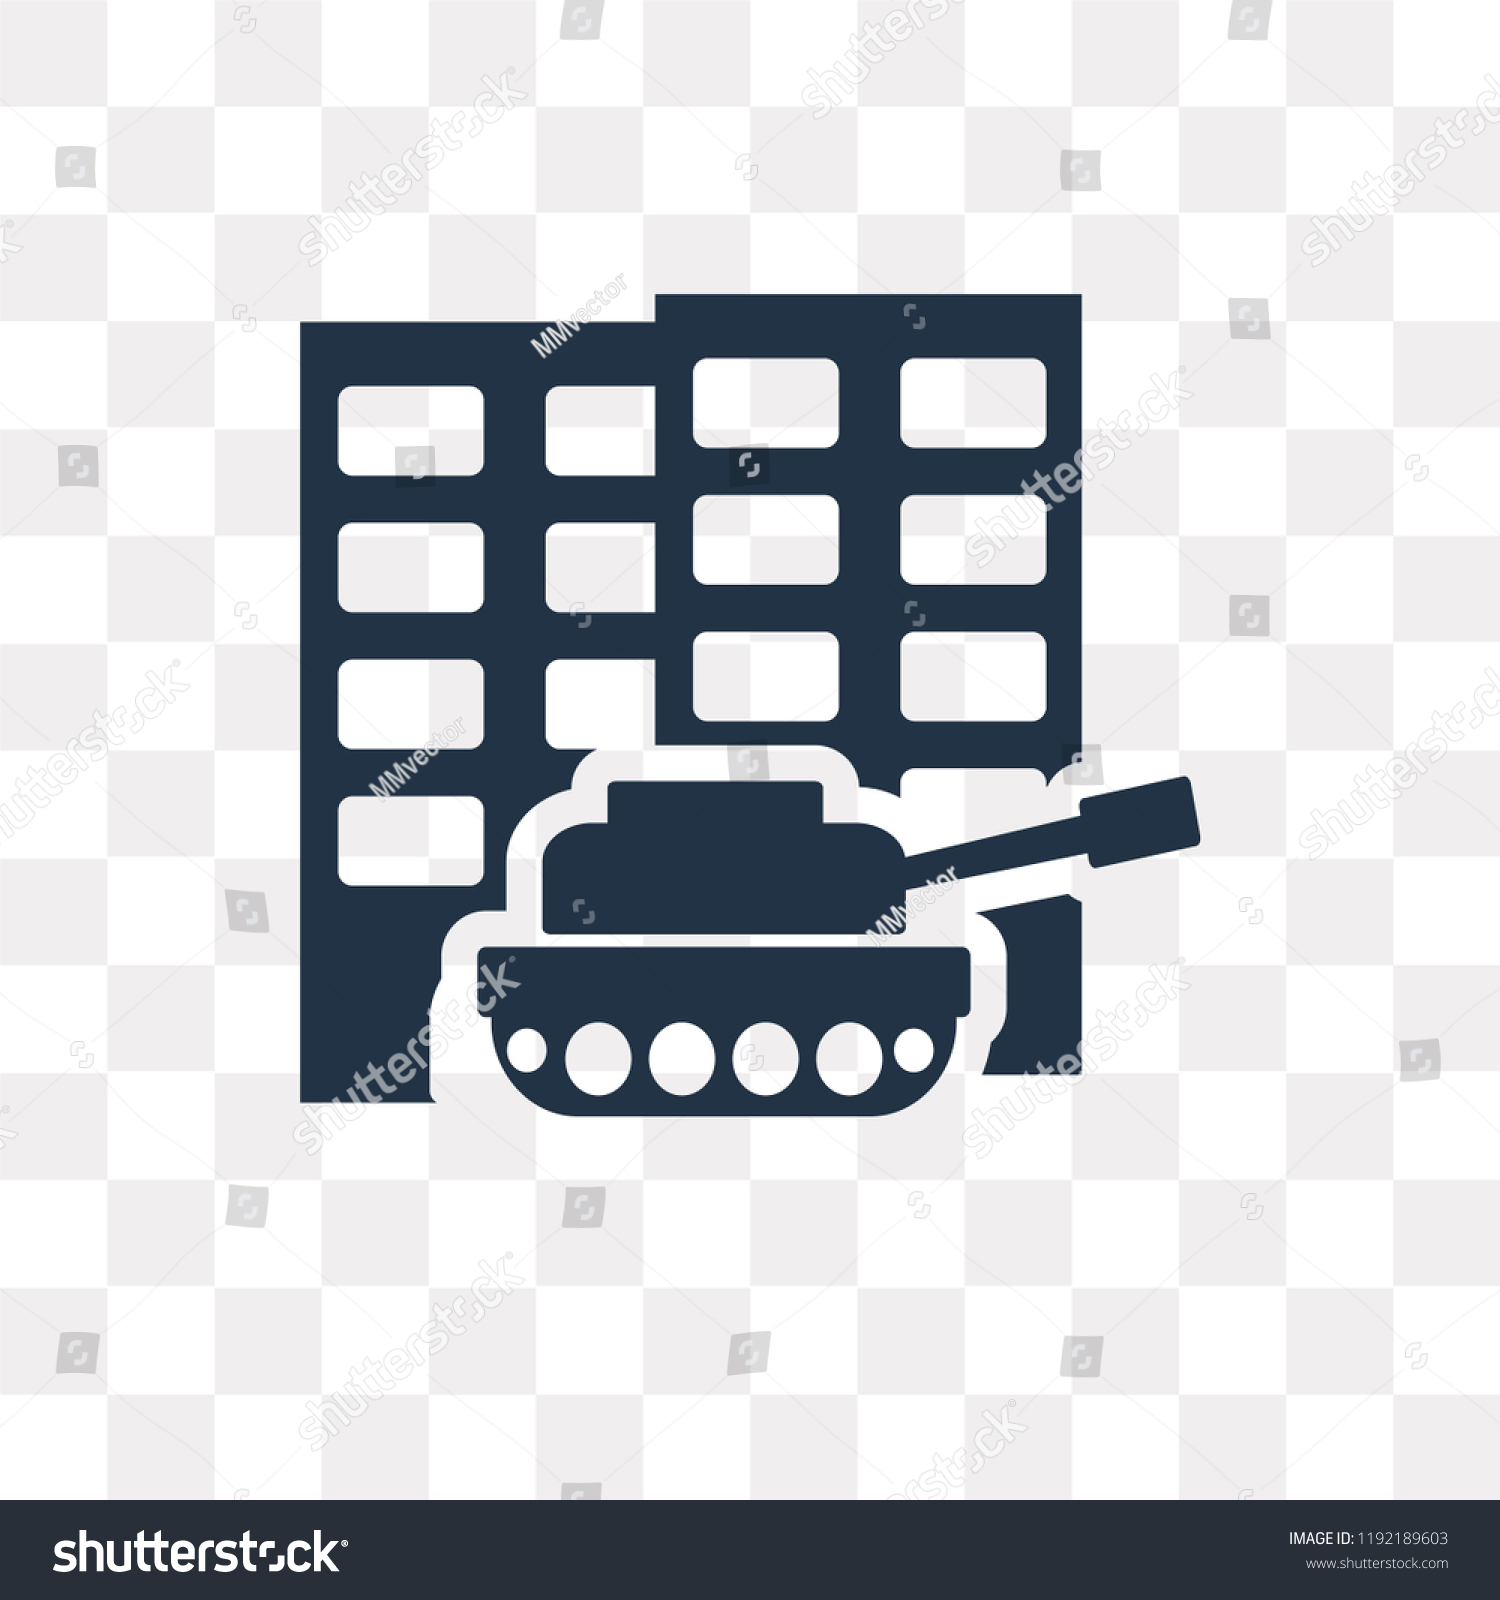 militar tank city street vector icon stock vector royalty free 1192189603 shutterstock